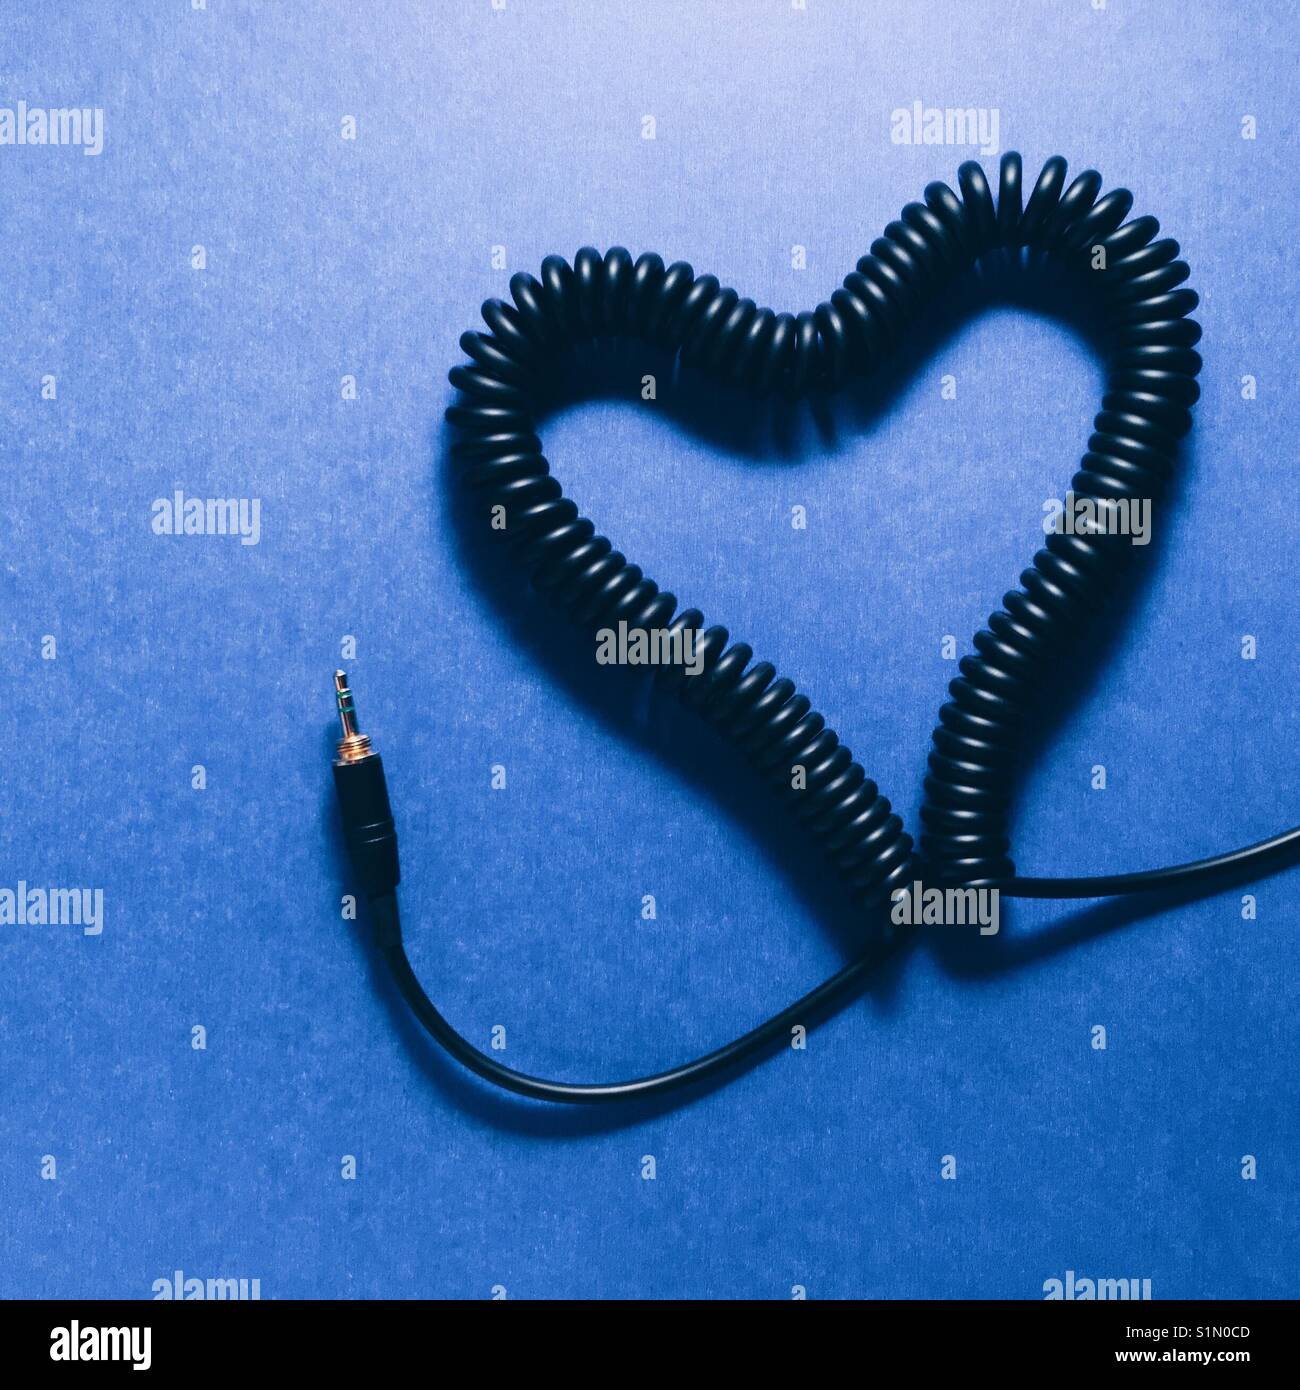 A coiled headphone cable made into a heart shape on a blue background - Stock Image